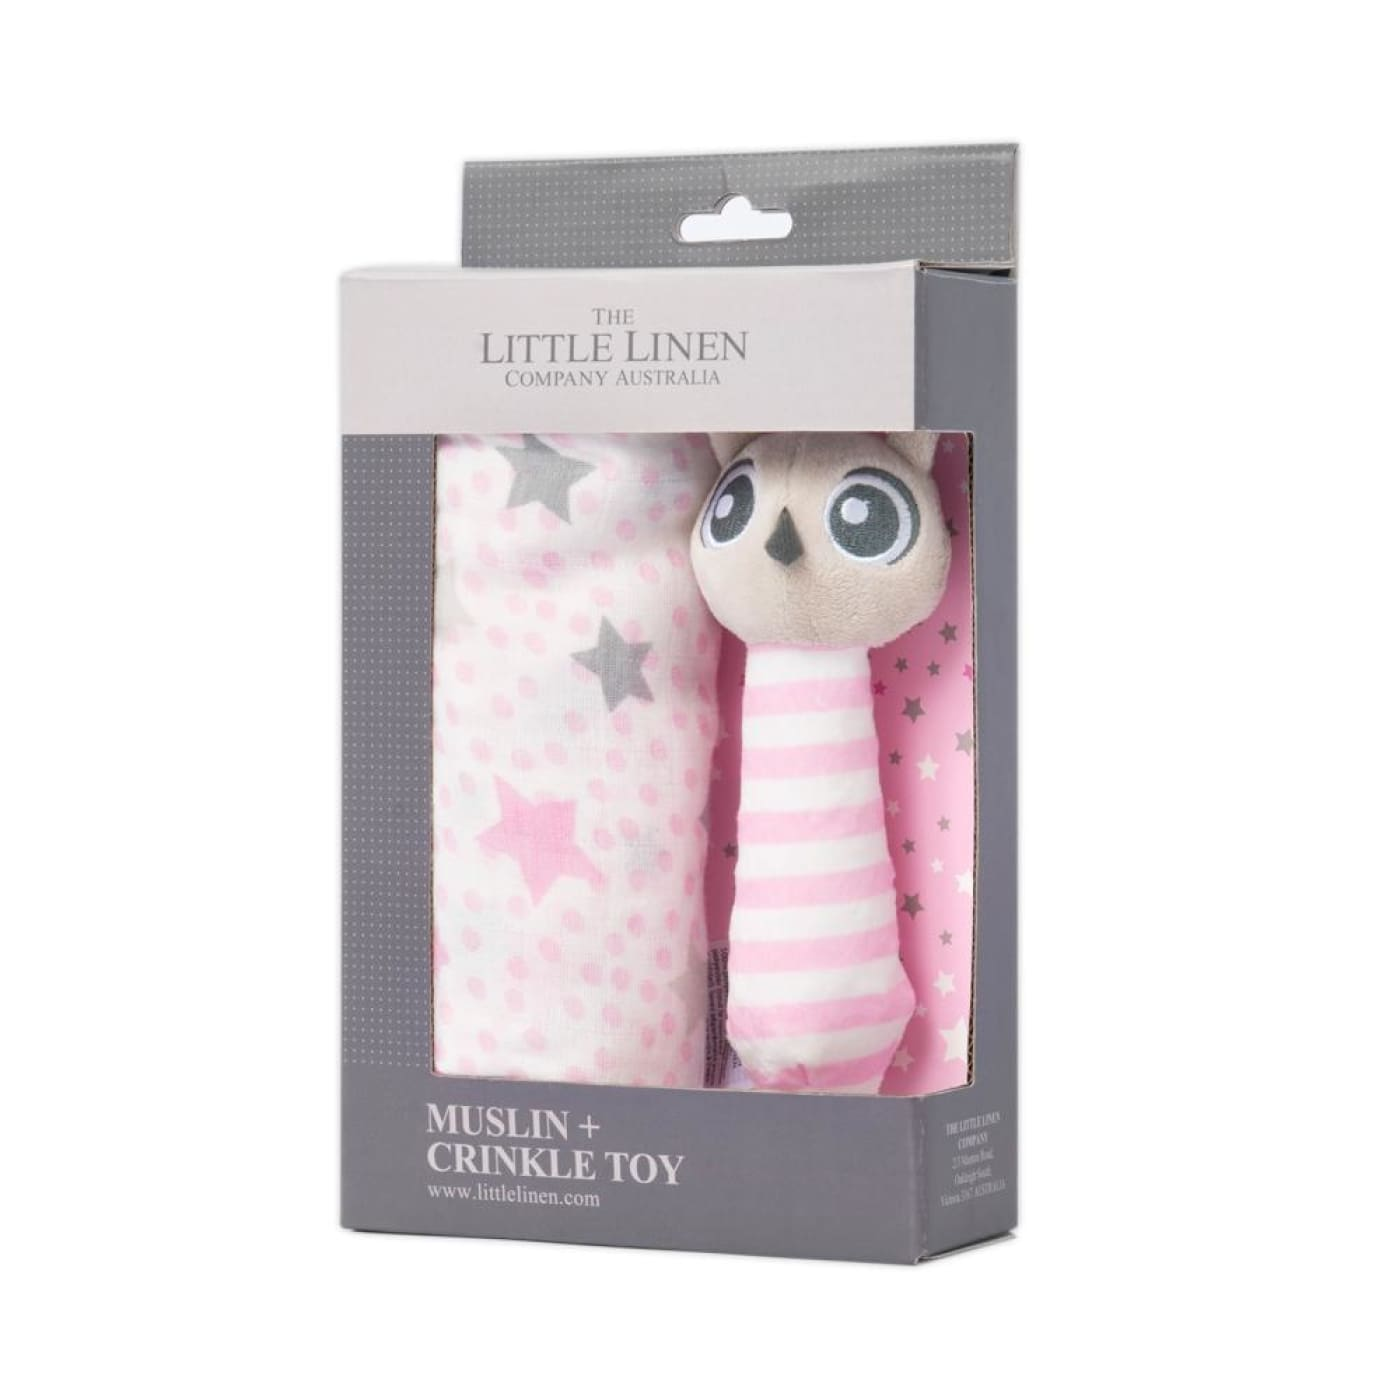 The Little Linen Company Muslin Wrap and Crinkle Toy - Pink Owl - Owl - NURSERY & BEDTIME - SWADDLES/WRAPS